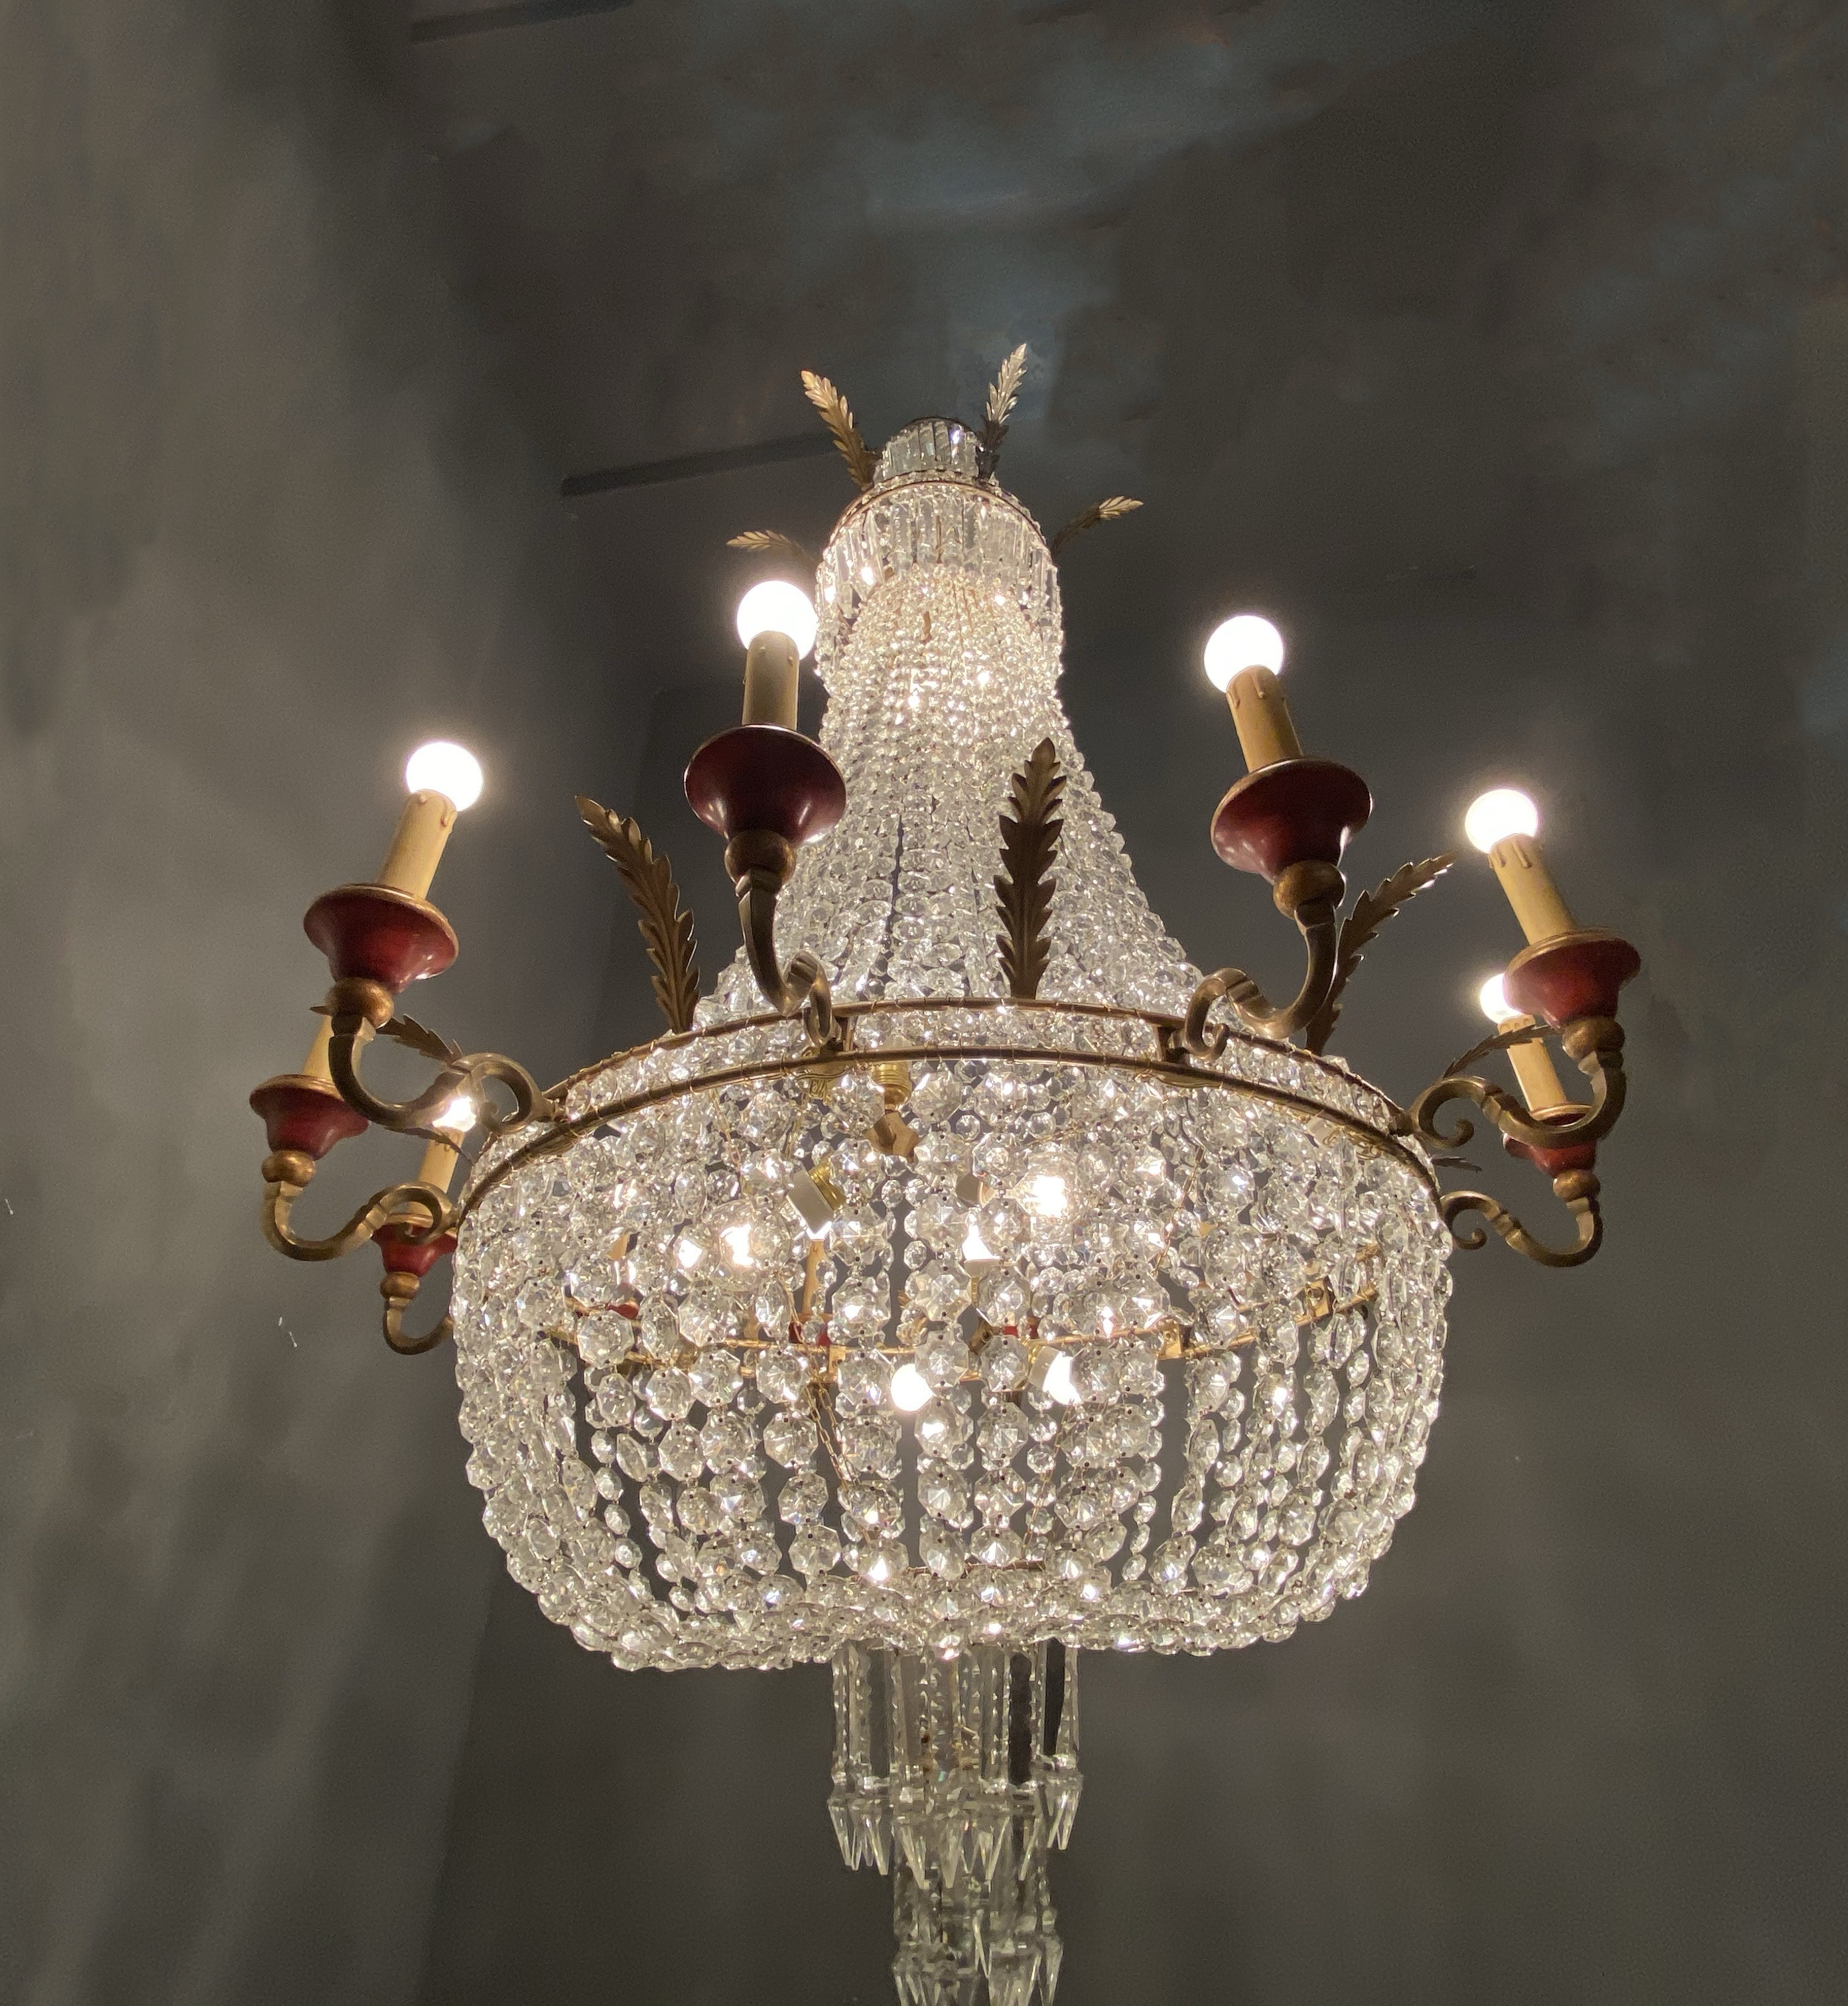 Crystal chandelierceiling light fitting from the 1950s